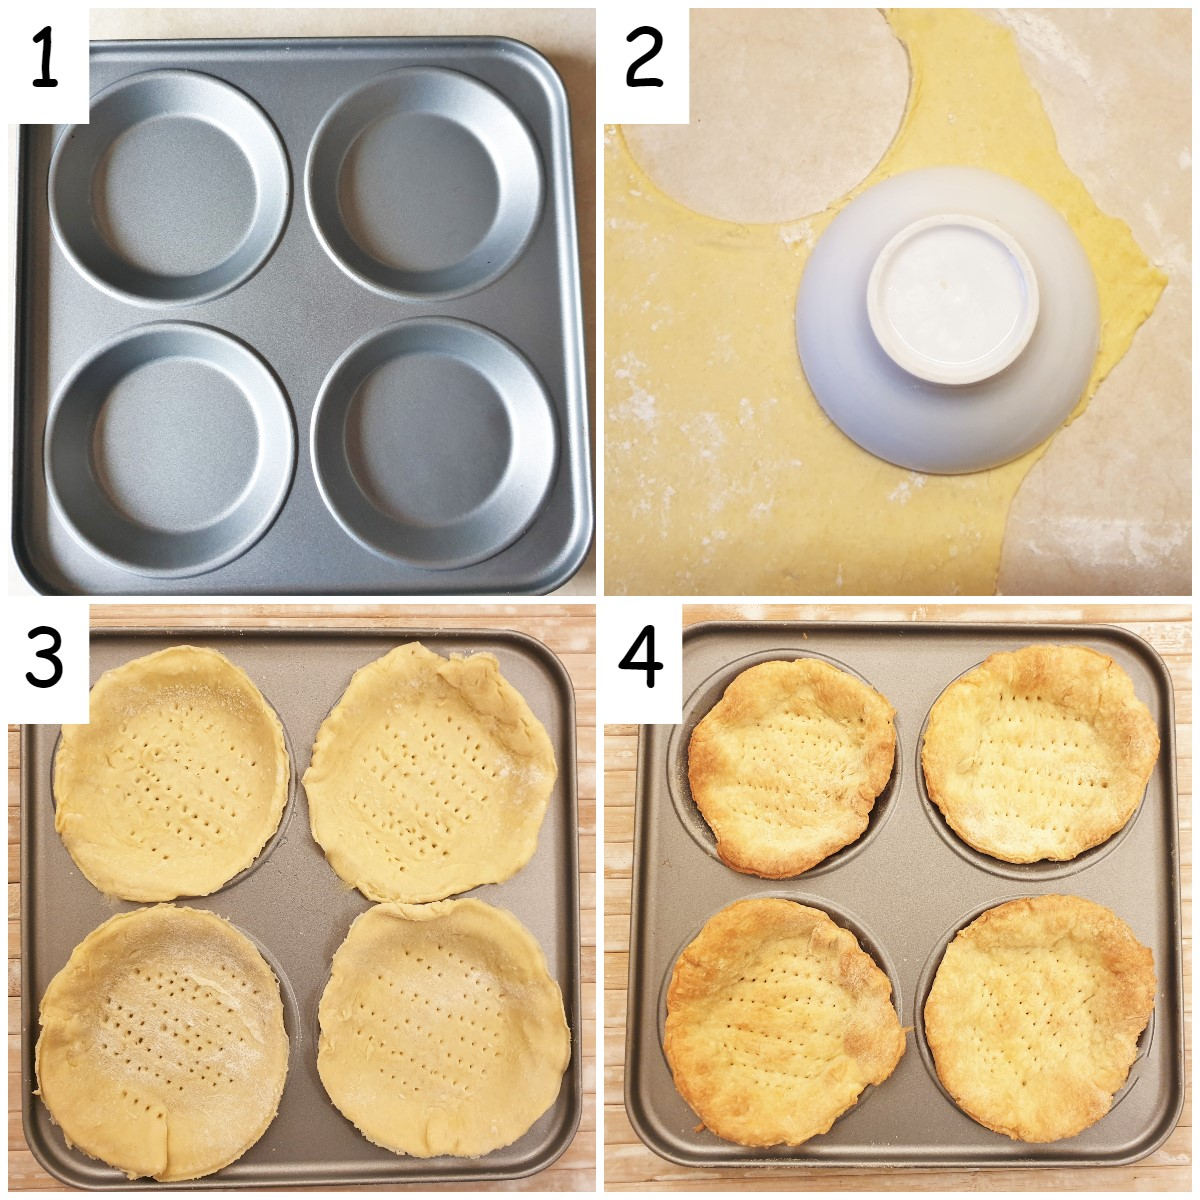 Steps for cutting the pastry and lining the baking pan.